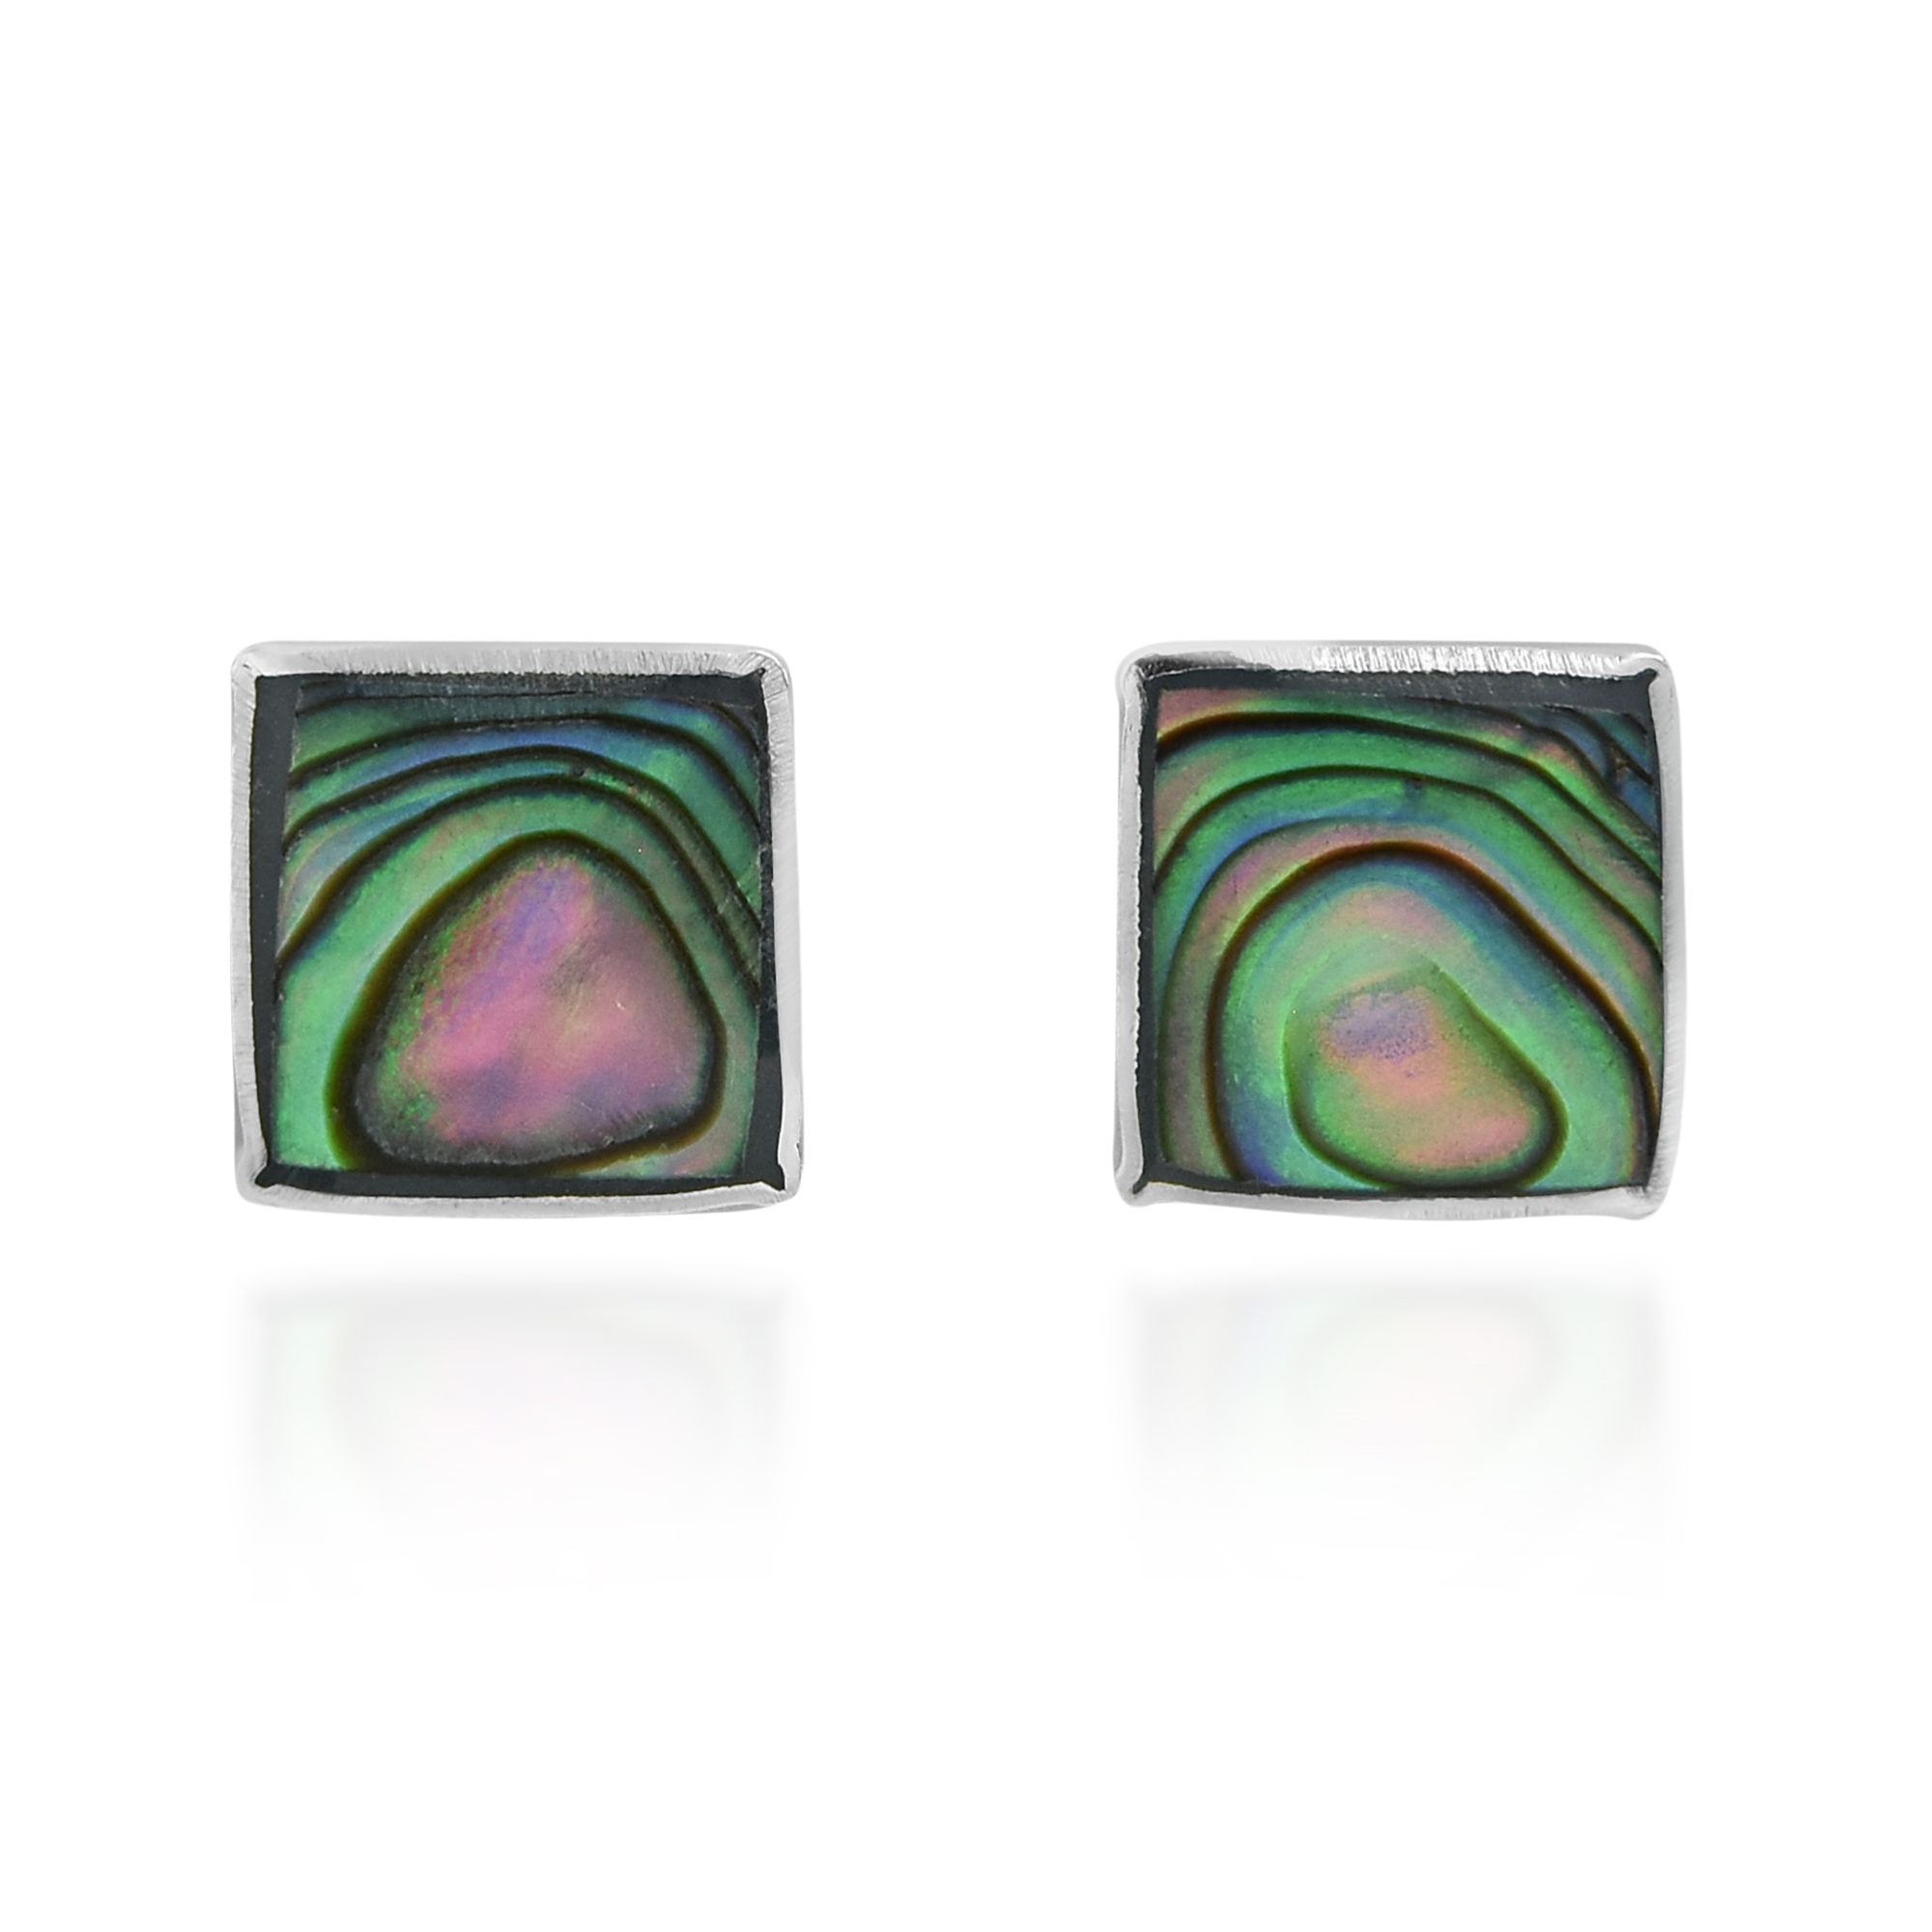 gold original and set stud krementz deco inlay in rim abalone cufflinks matching p platinum fullxfull vest studs art ngzq box filled il with tuxedo